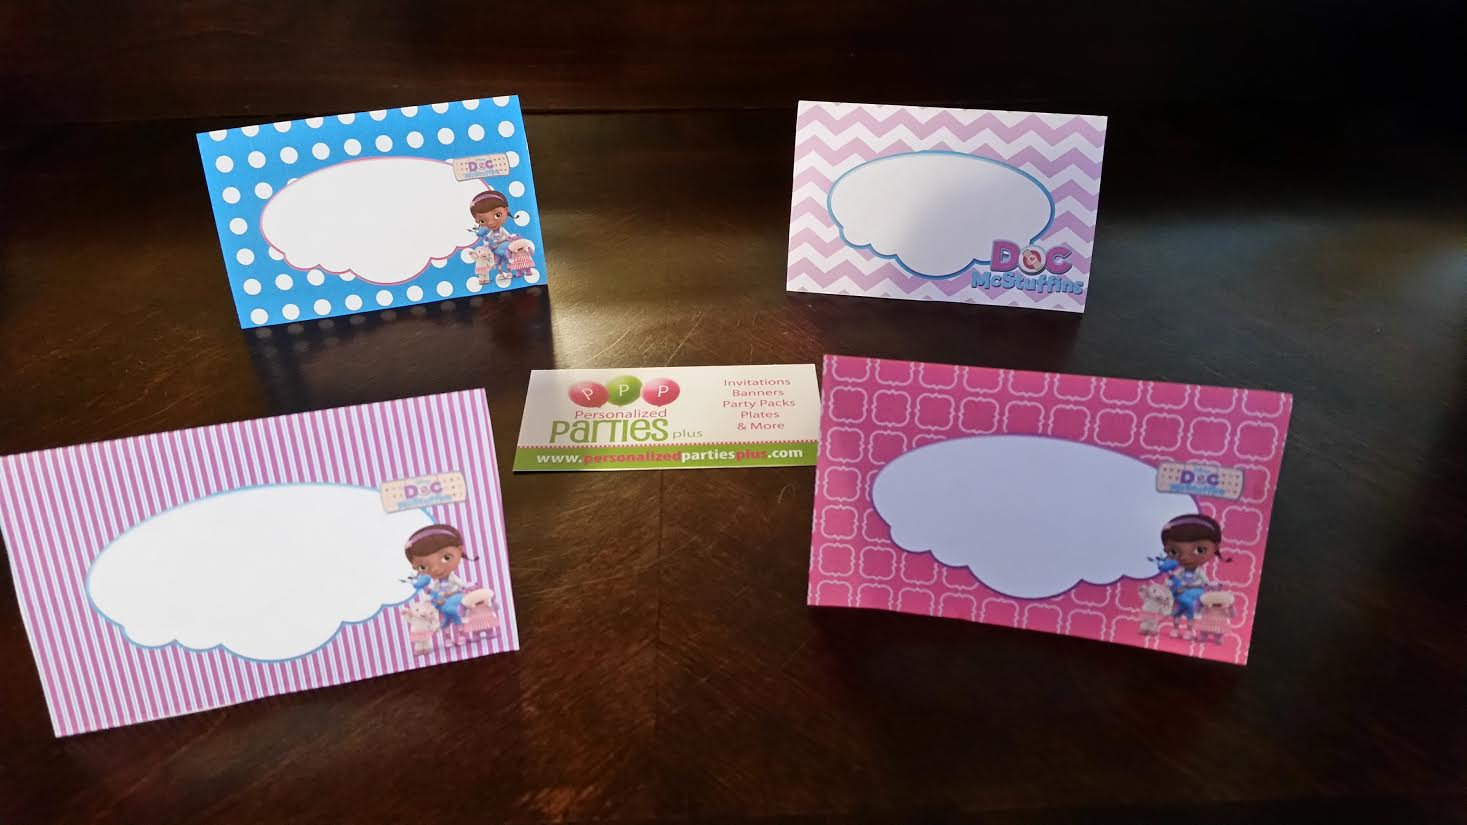 Doc McStuffins birthday party pack: plates, cups, banner, signs and food tents